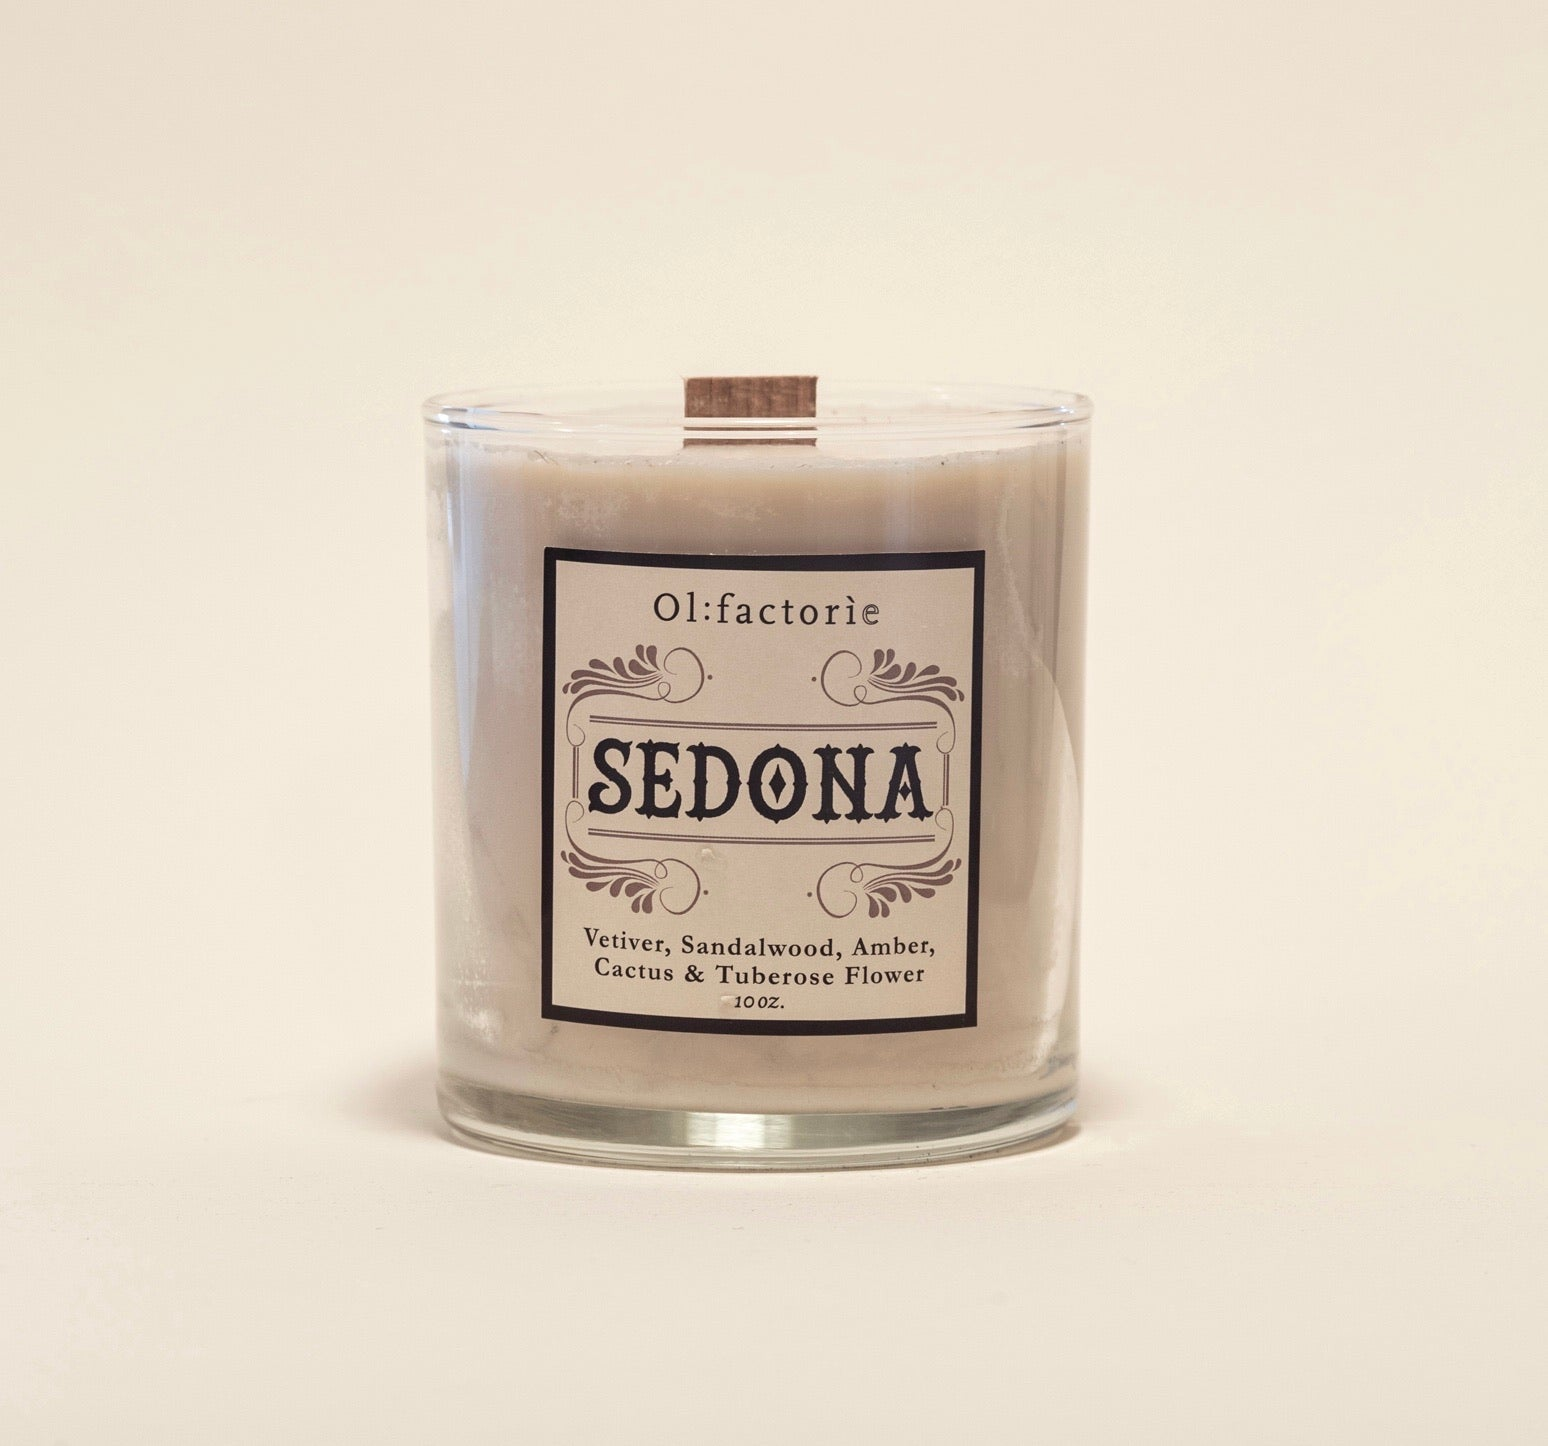 Sedona Candle - Olfactorie Candles